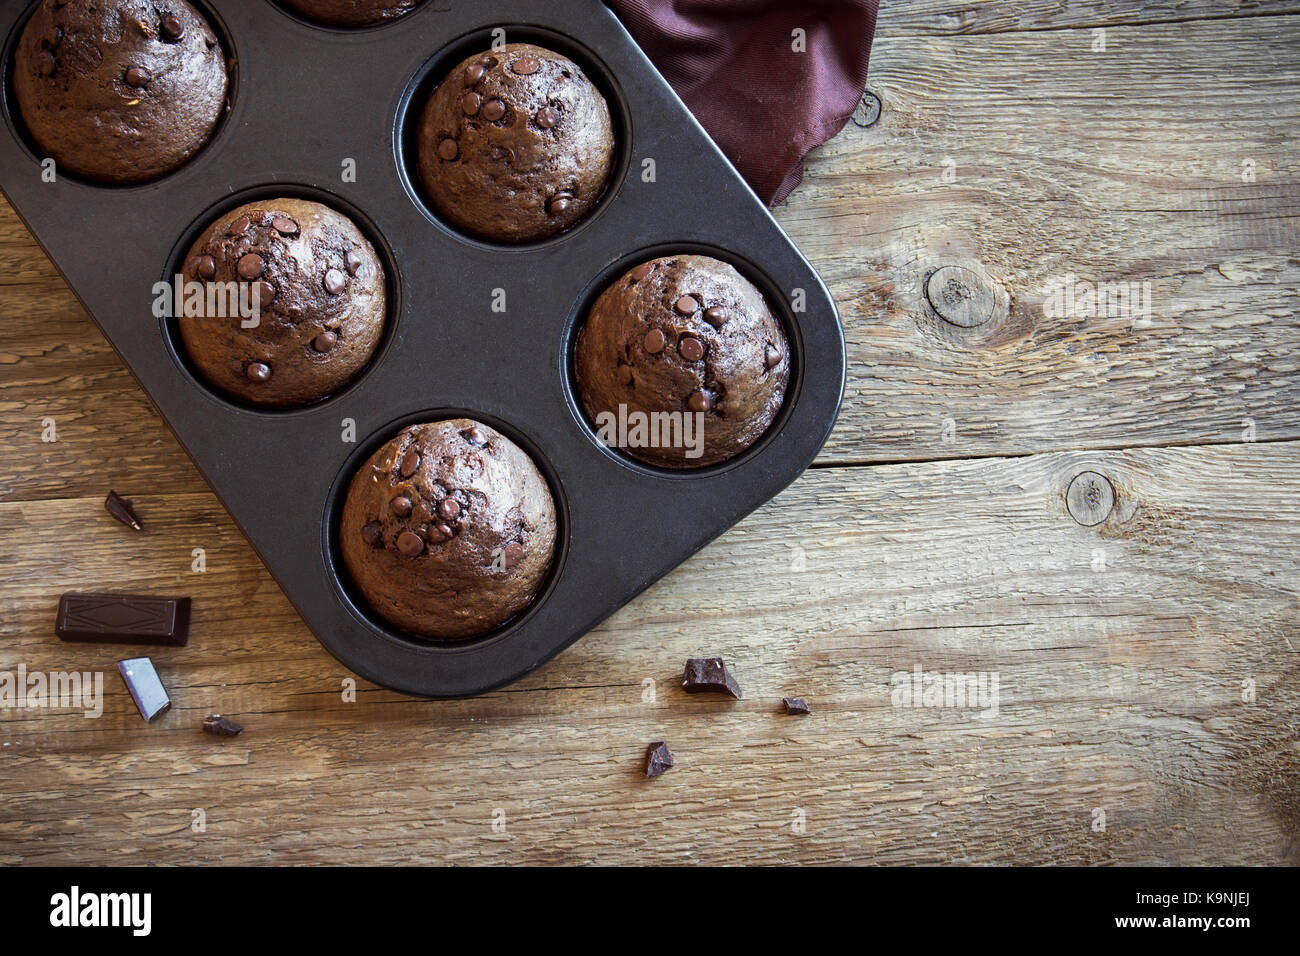 Chocolate Muffins with Chocolate Drops. Homemade chocolate pastry for breakfast or dessert. - Stock Image